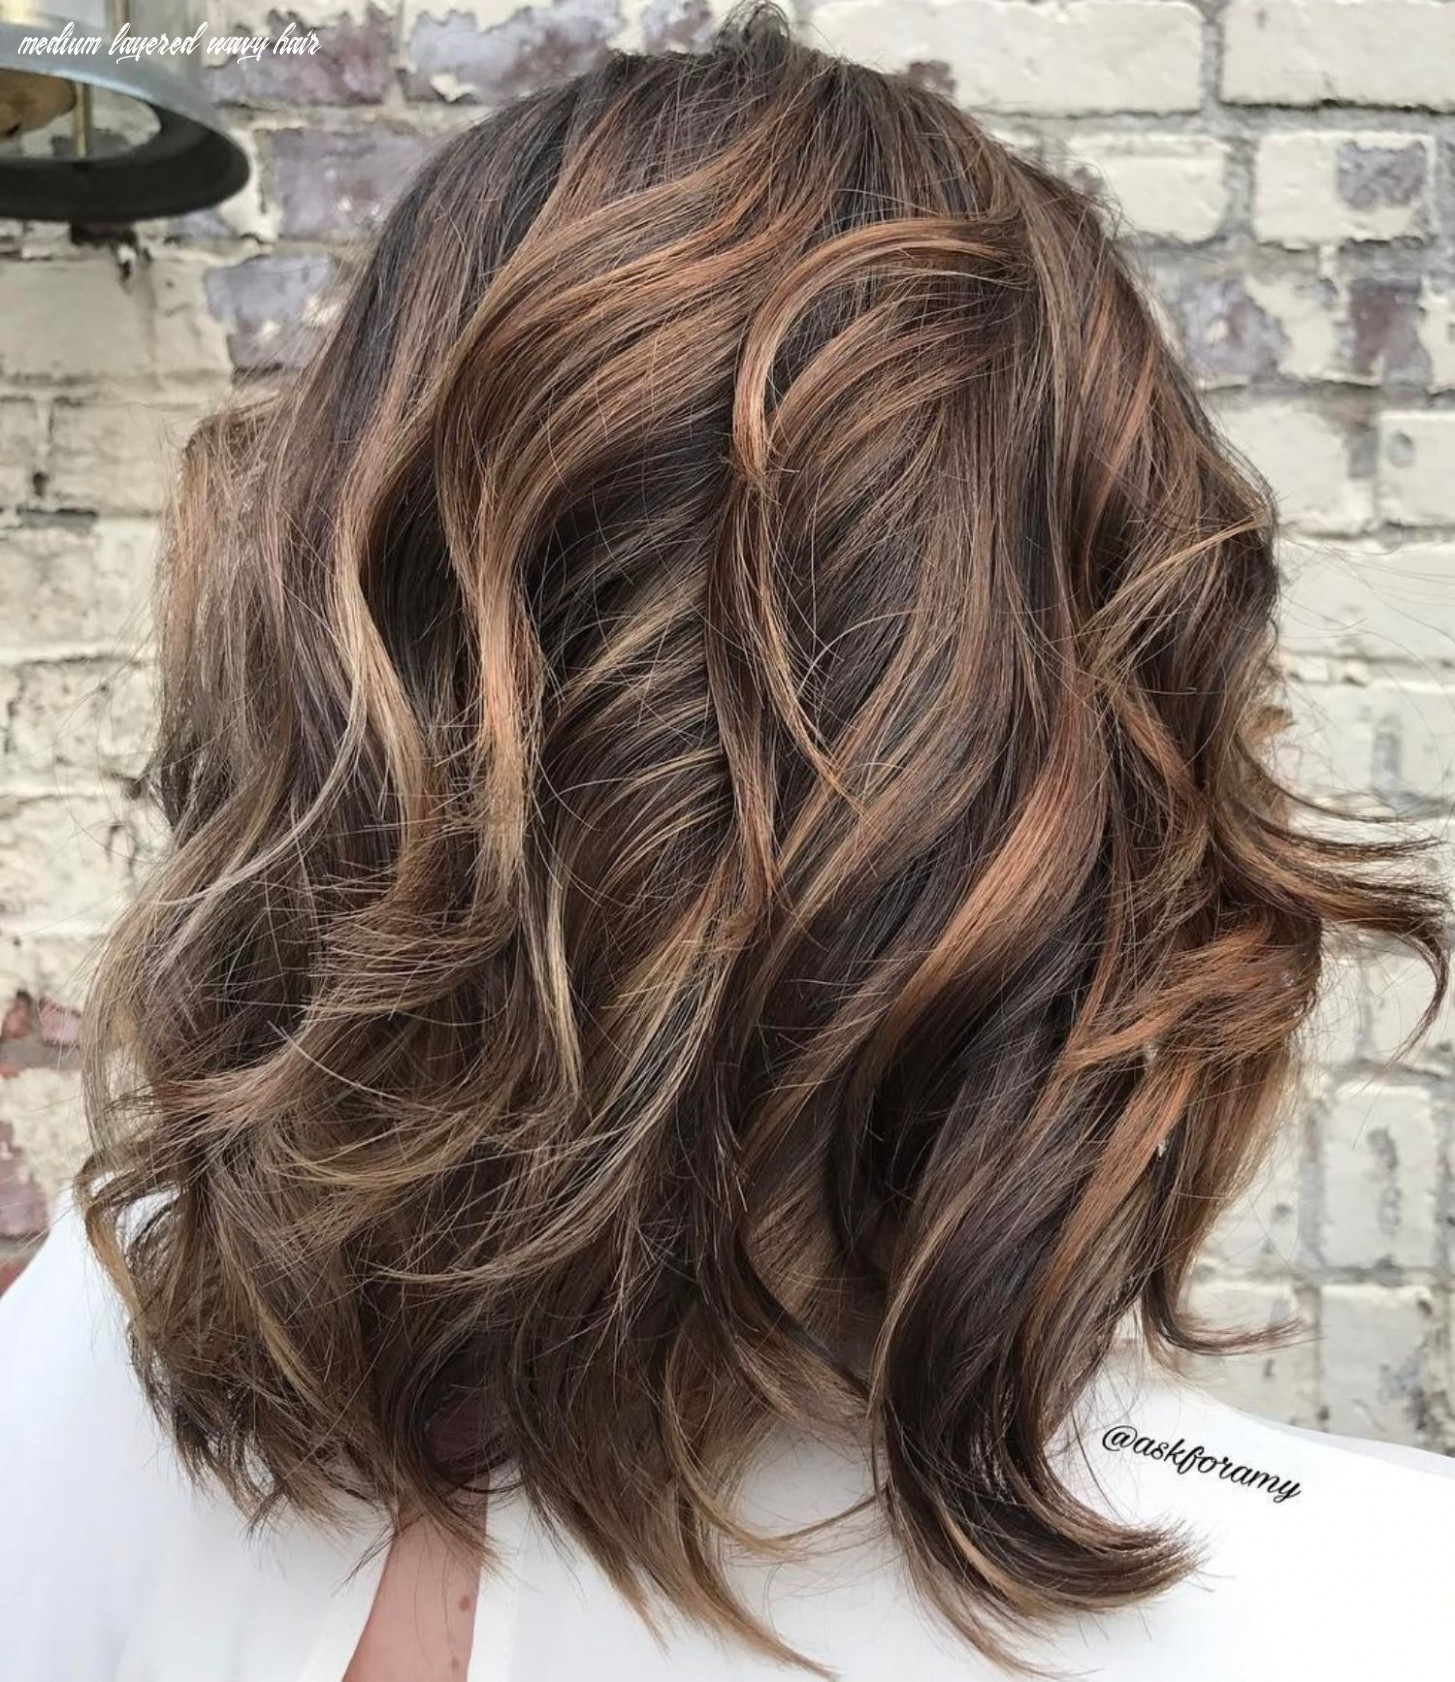 Pin on my style medium layered wavy hair